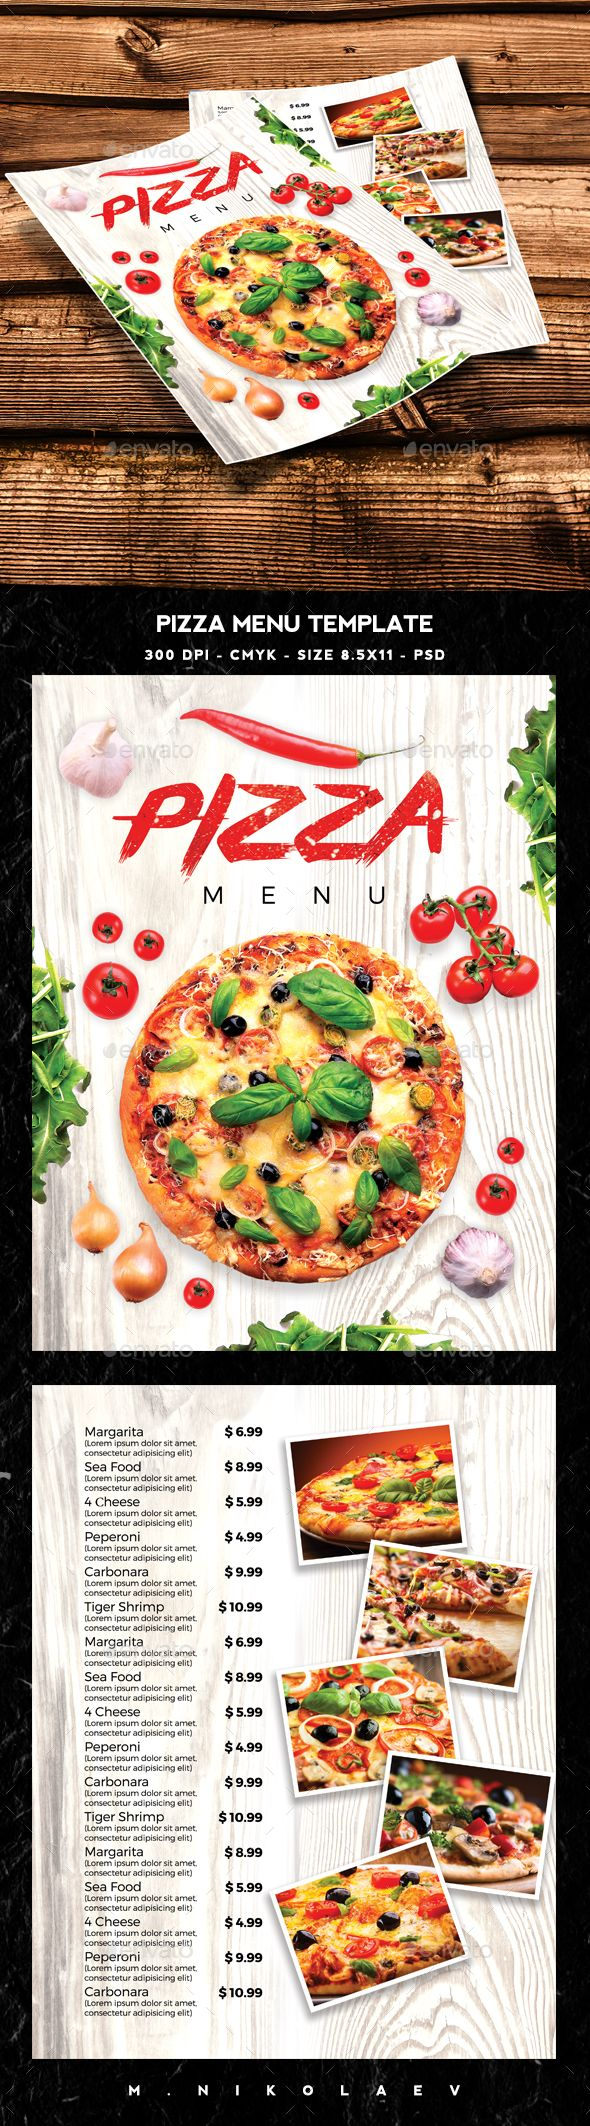 Pizza Menu Template PSD. Download here: http://graphicriver.net/item/pizza-menu-template/15435424?ref=ksioks